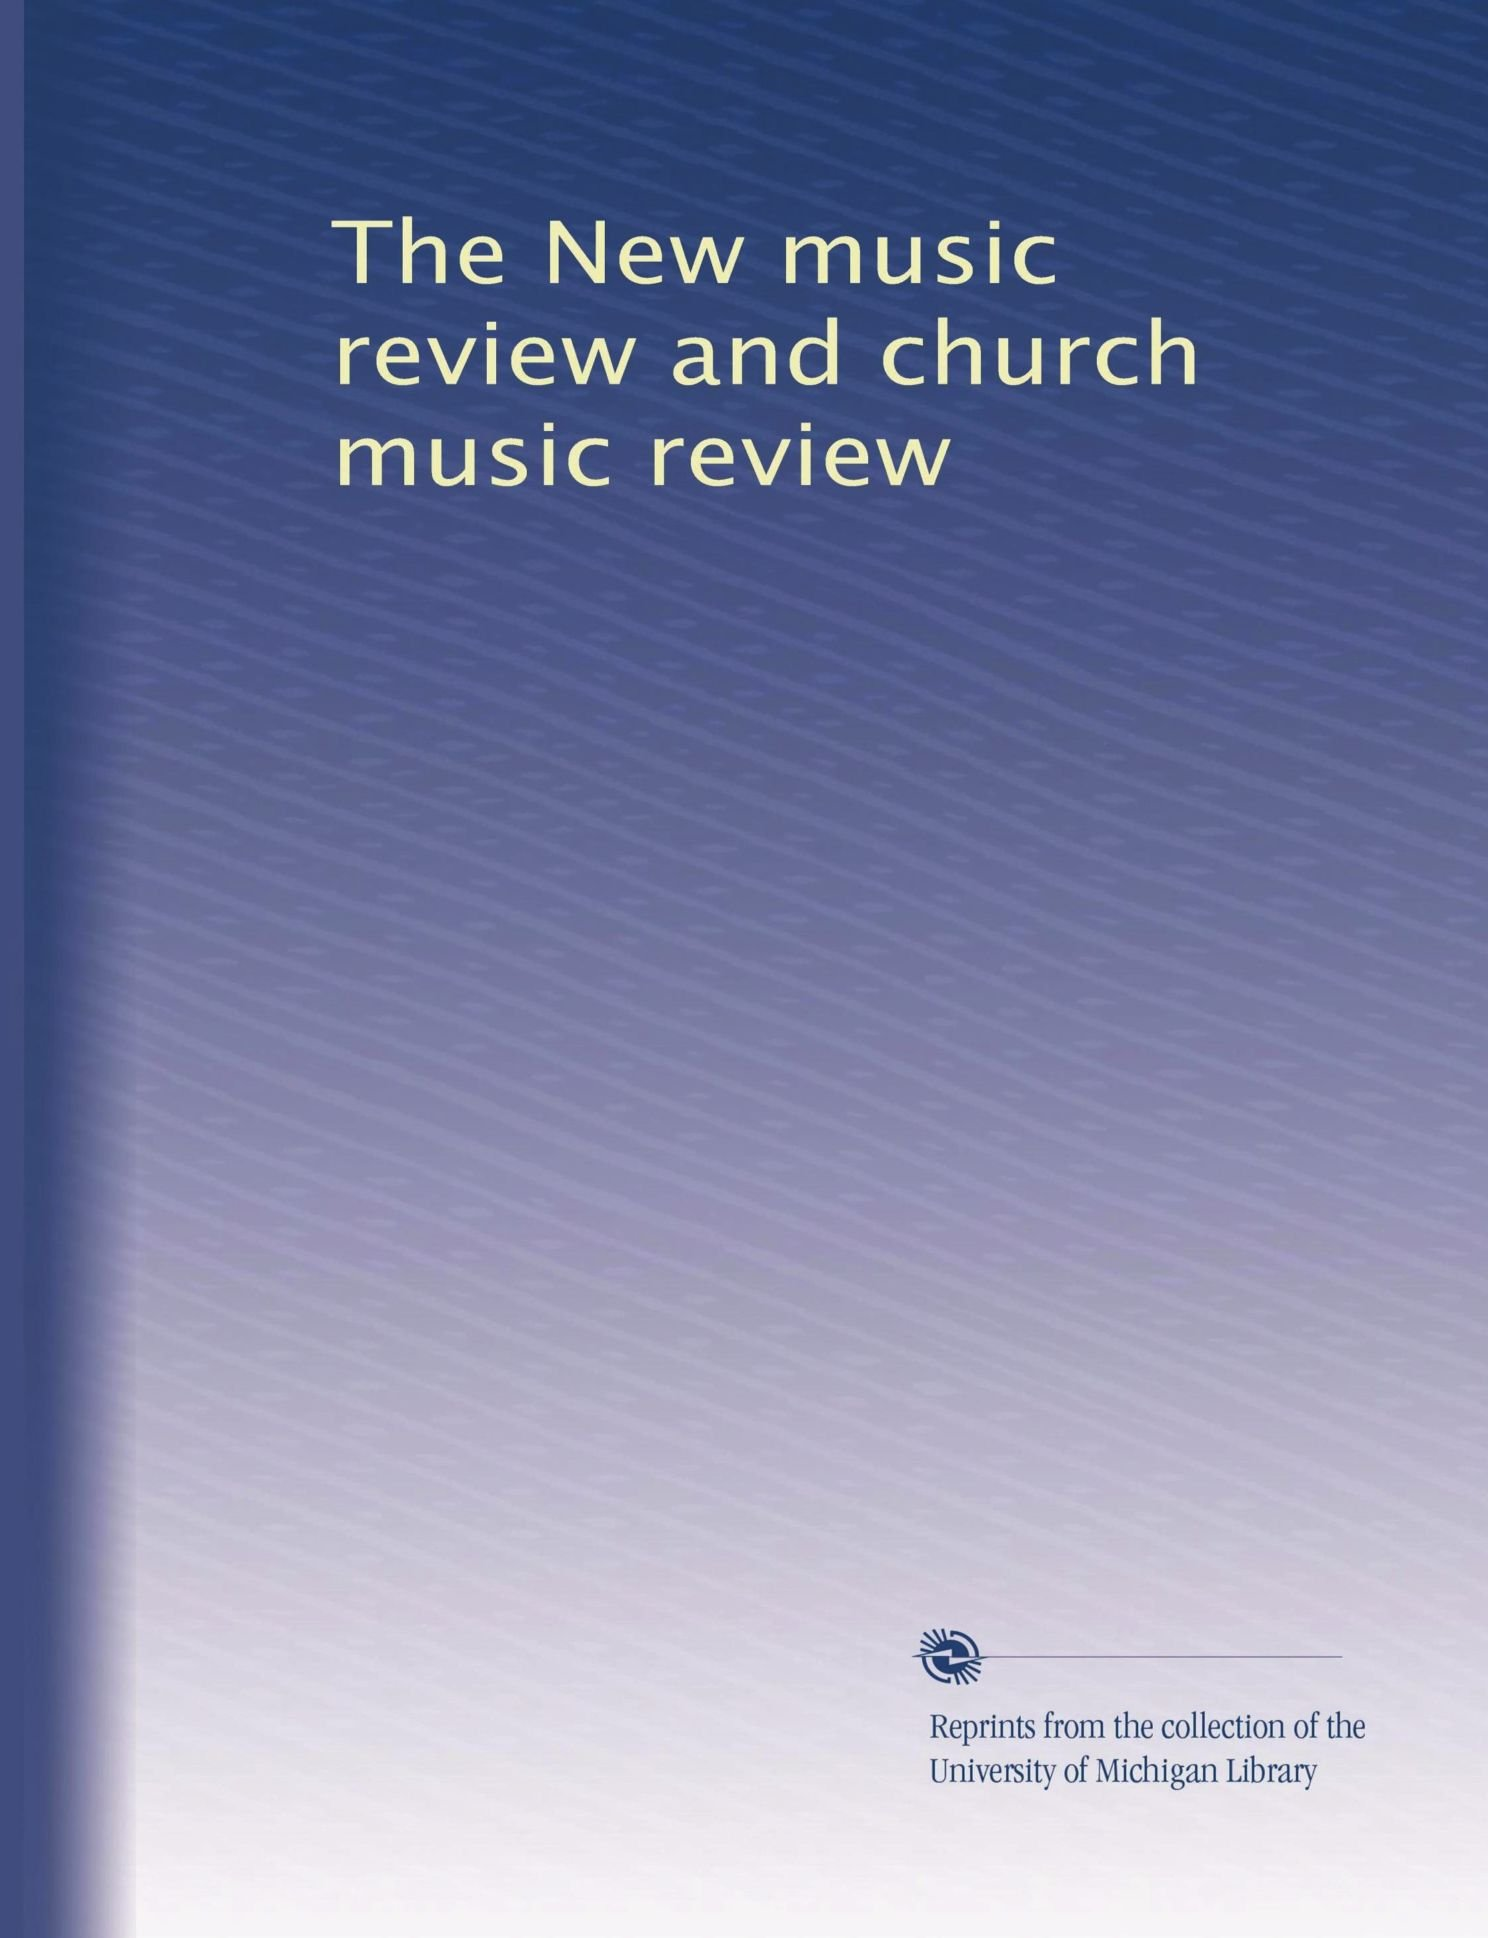 Download The New music review and church music review (Volume 3) ebook